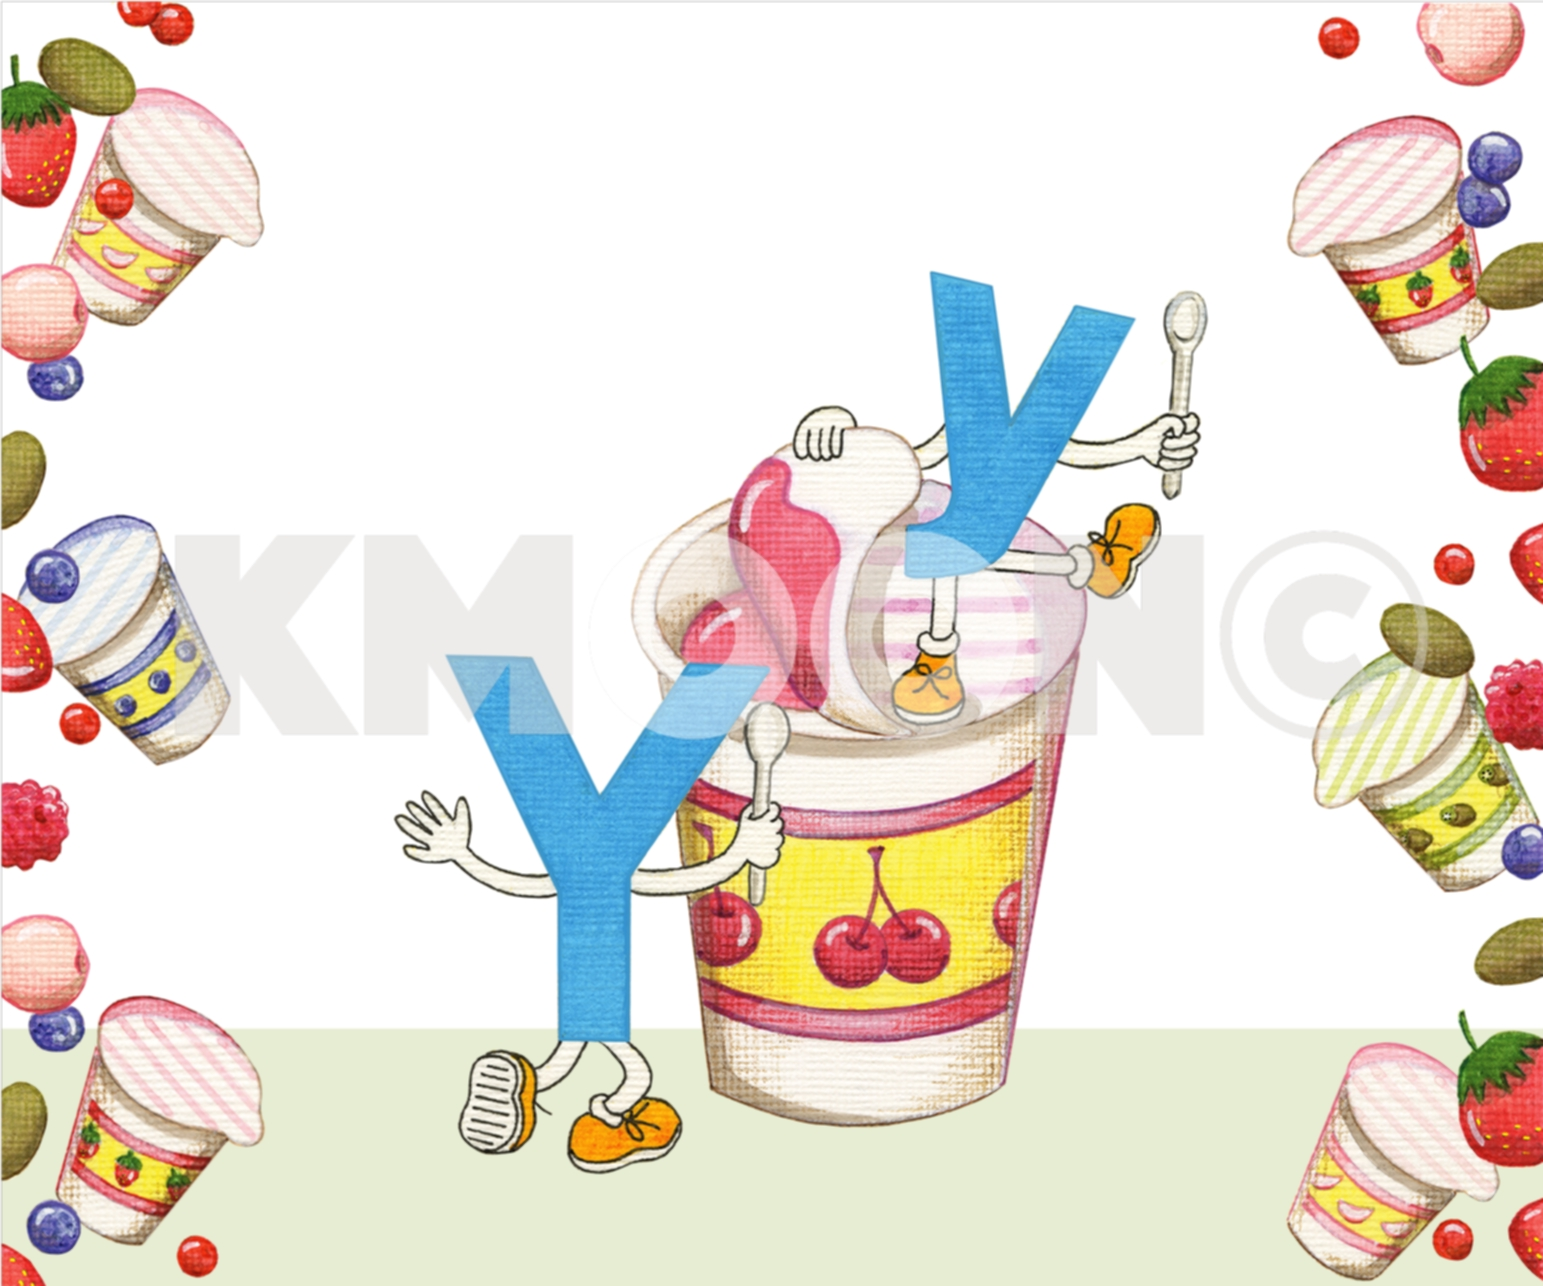 Yy is for ... yogurt